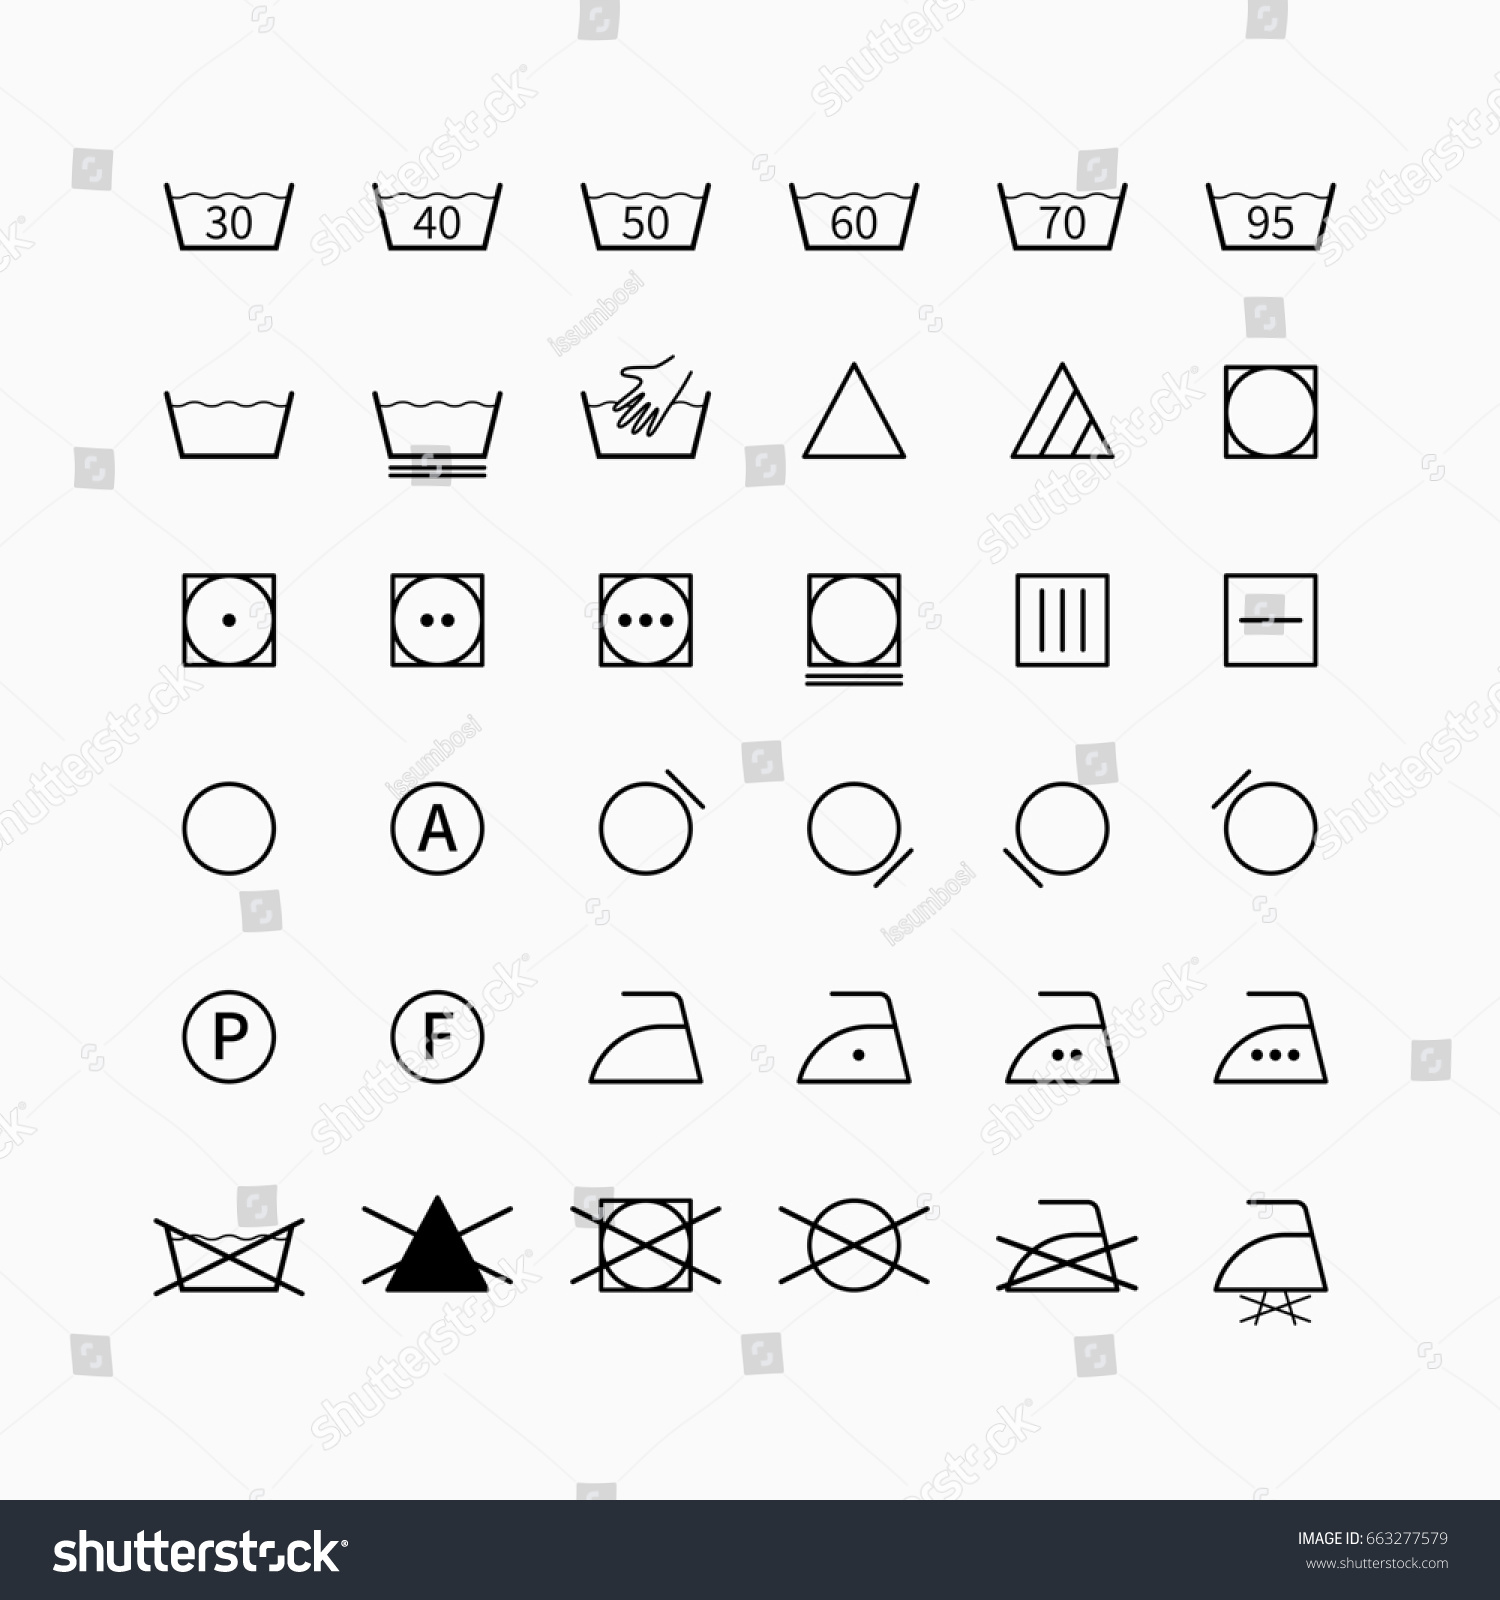 Laundry Drycleaning Symbols Set Garment Clothing Stock Illustration